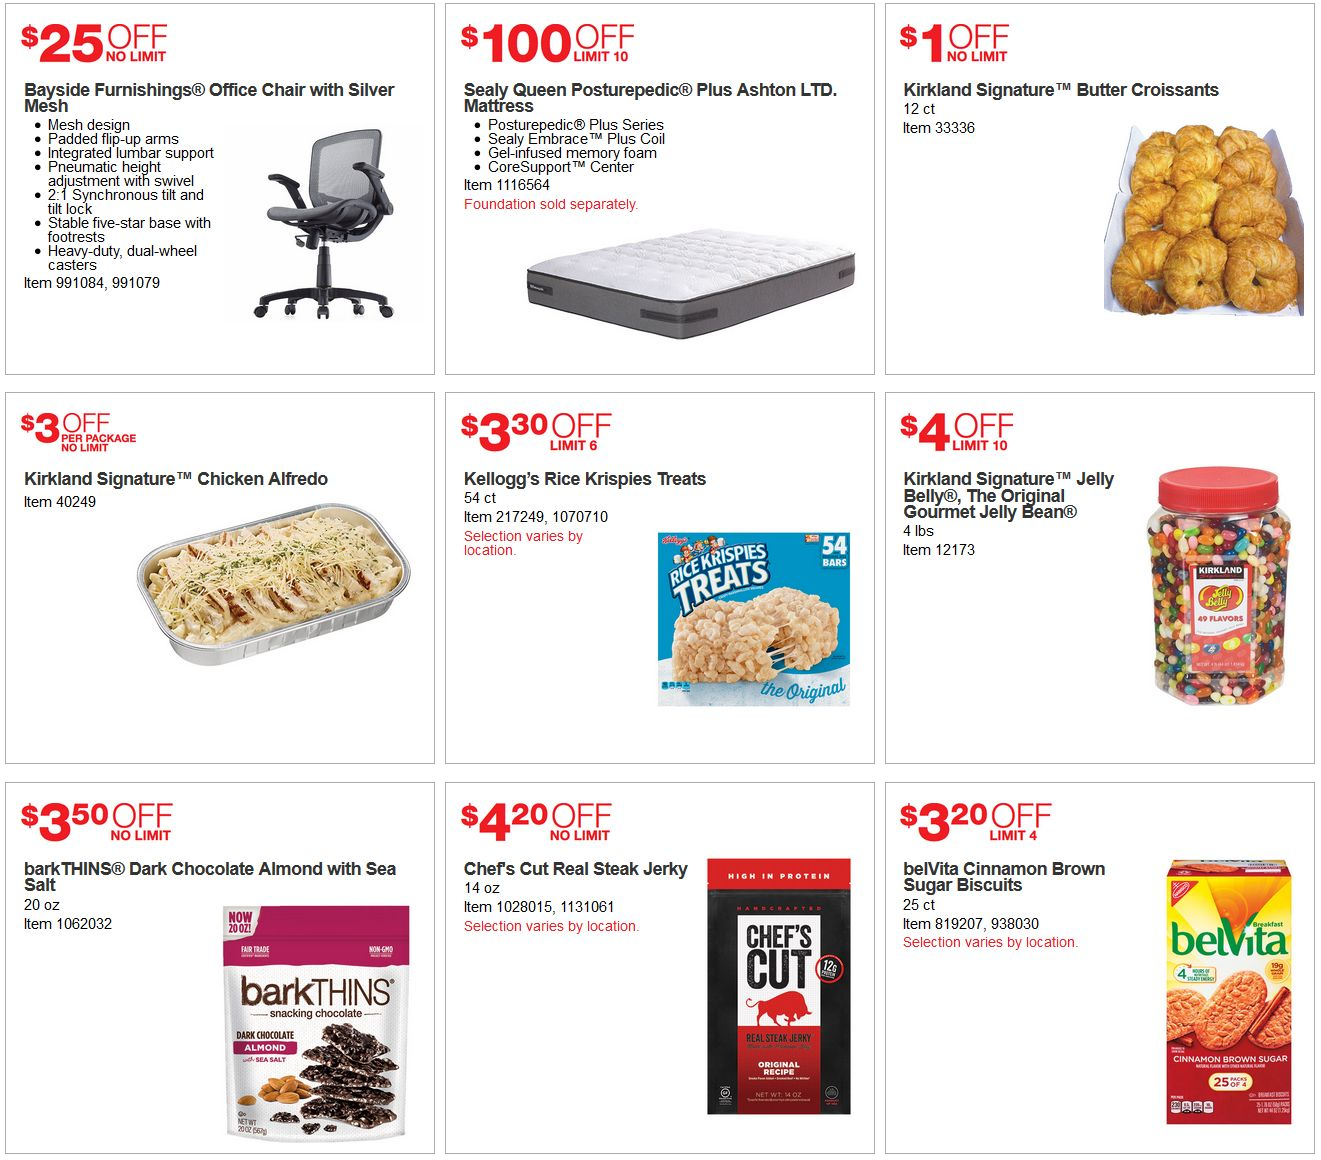 Deal Costco Canada Online Offers Valid From Feb 28 To Mar: Costco Coupon Offers March 23